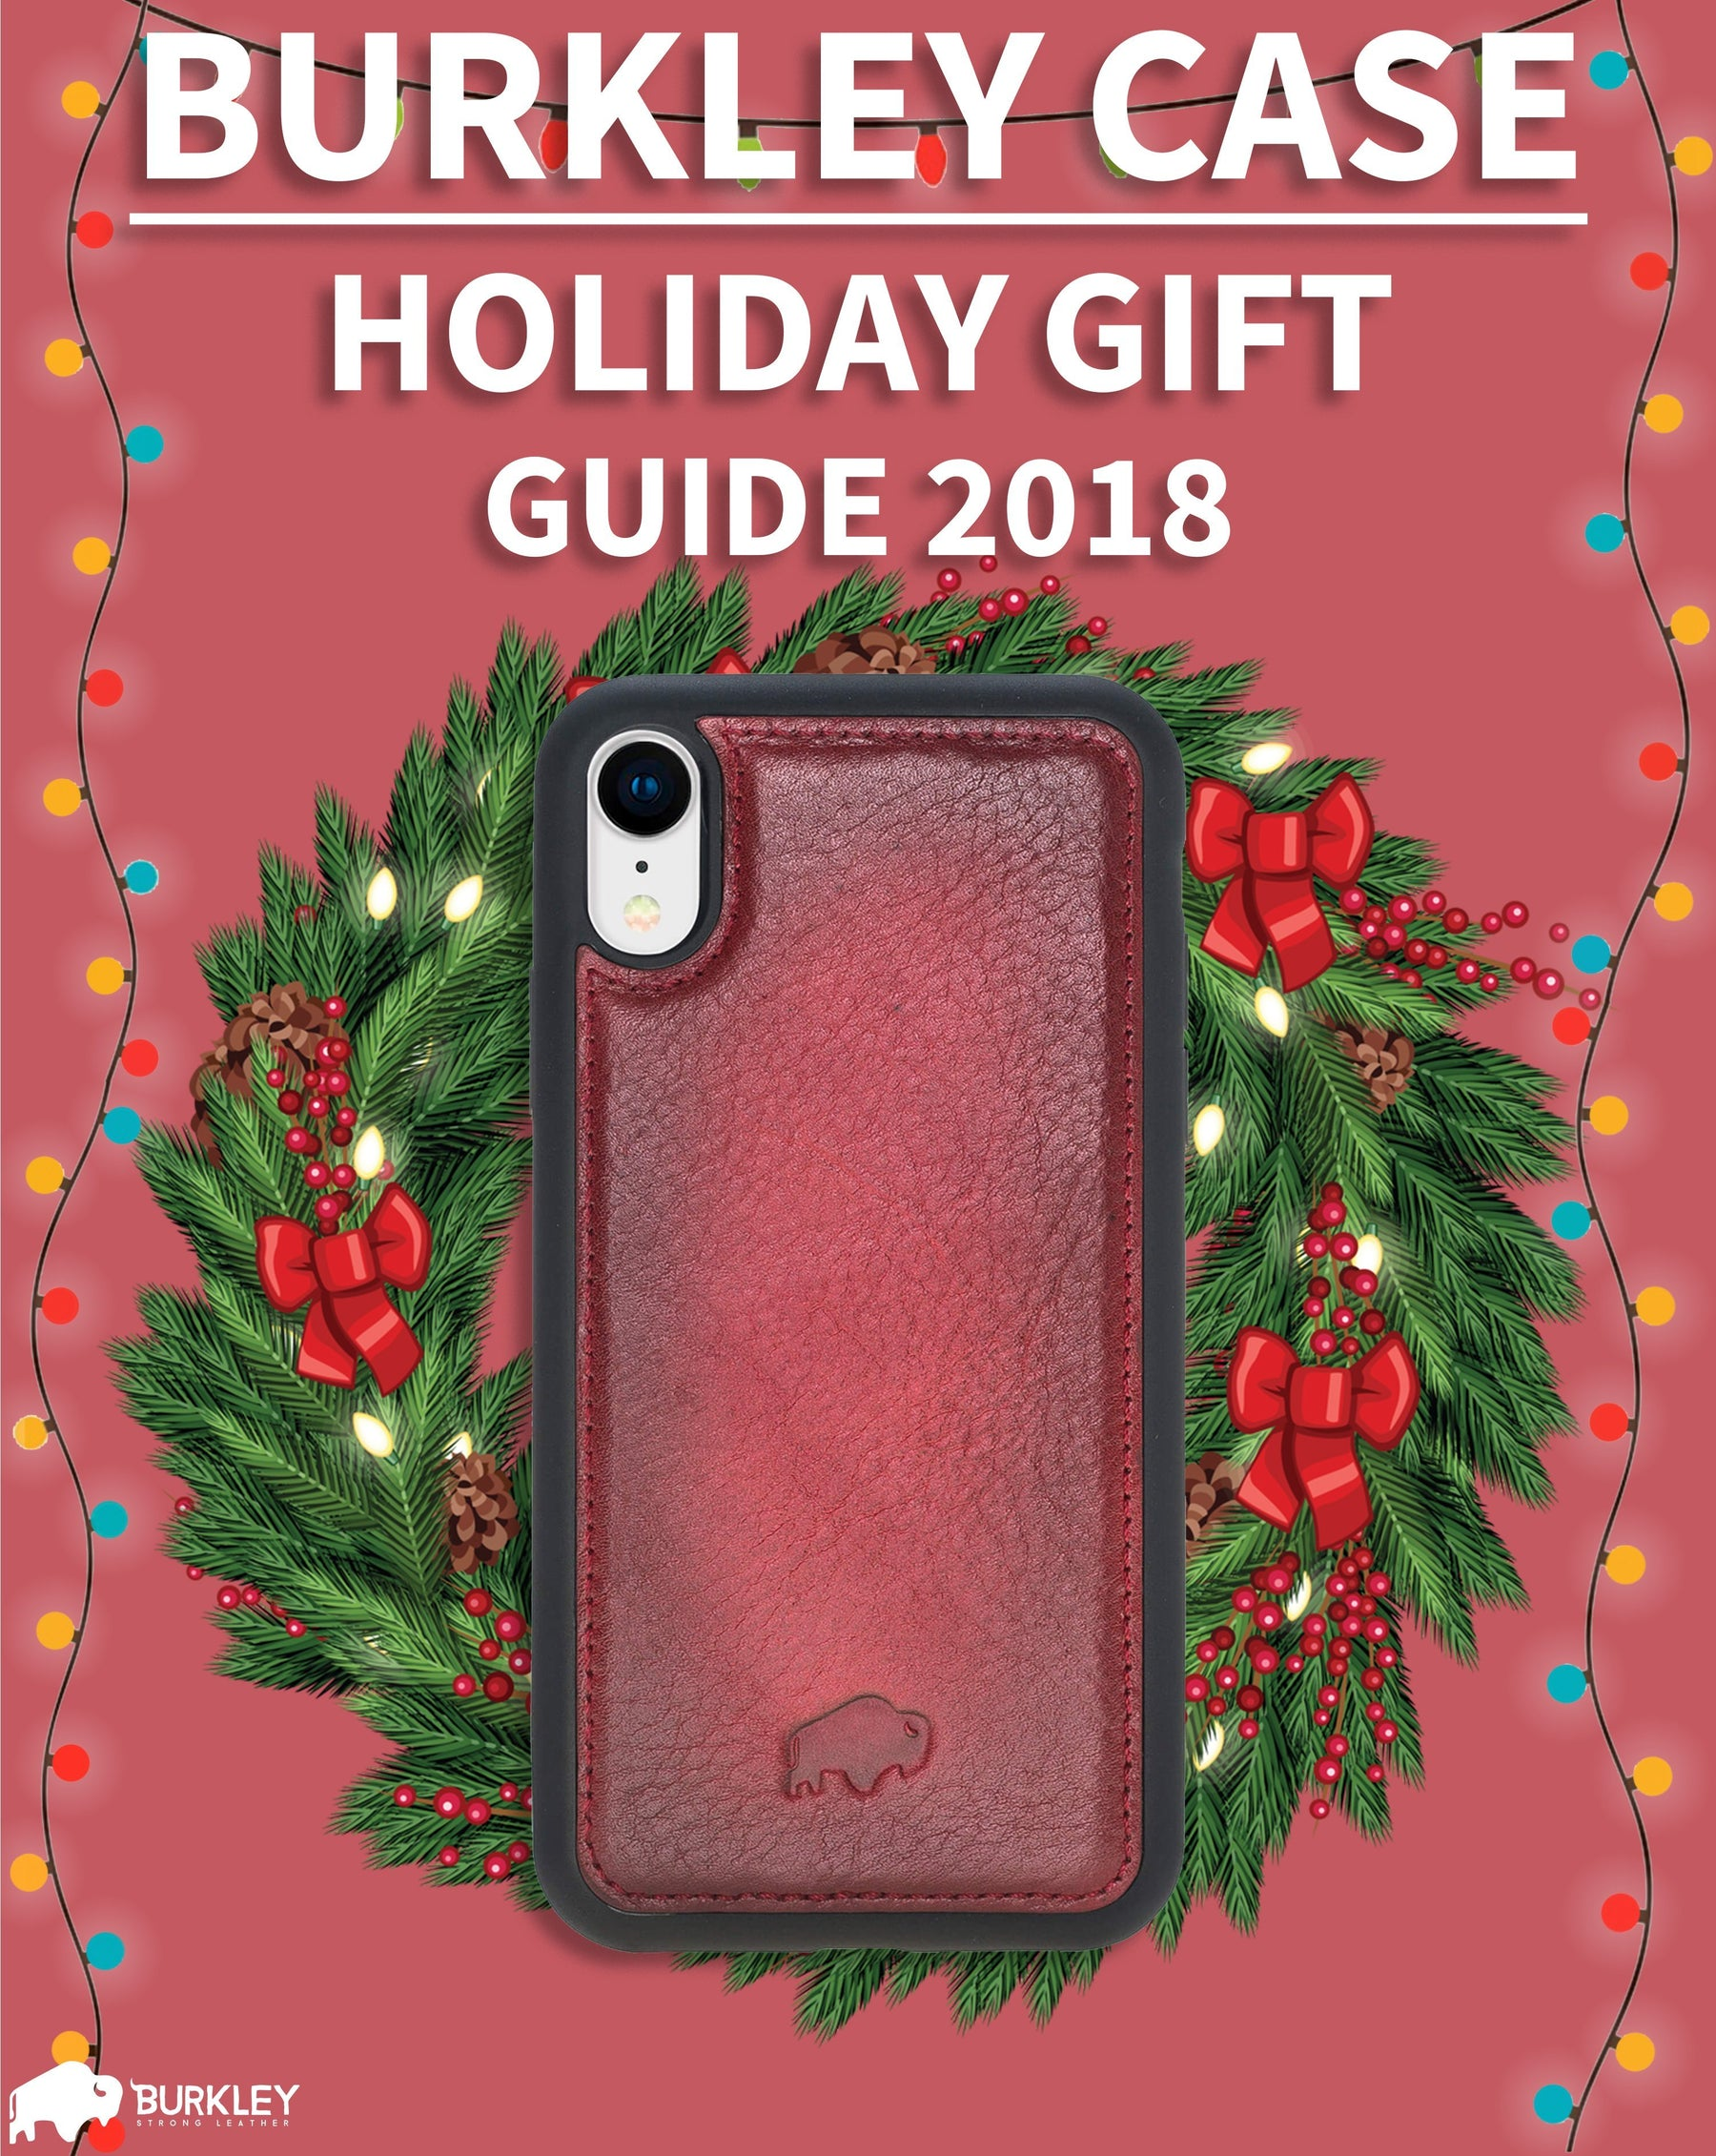 Burkley Holiday Gift Guide 2018! | Burkley Case